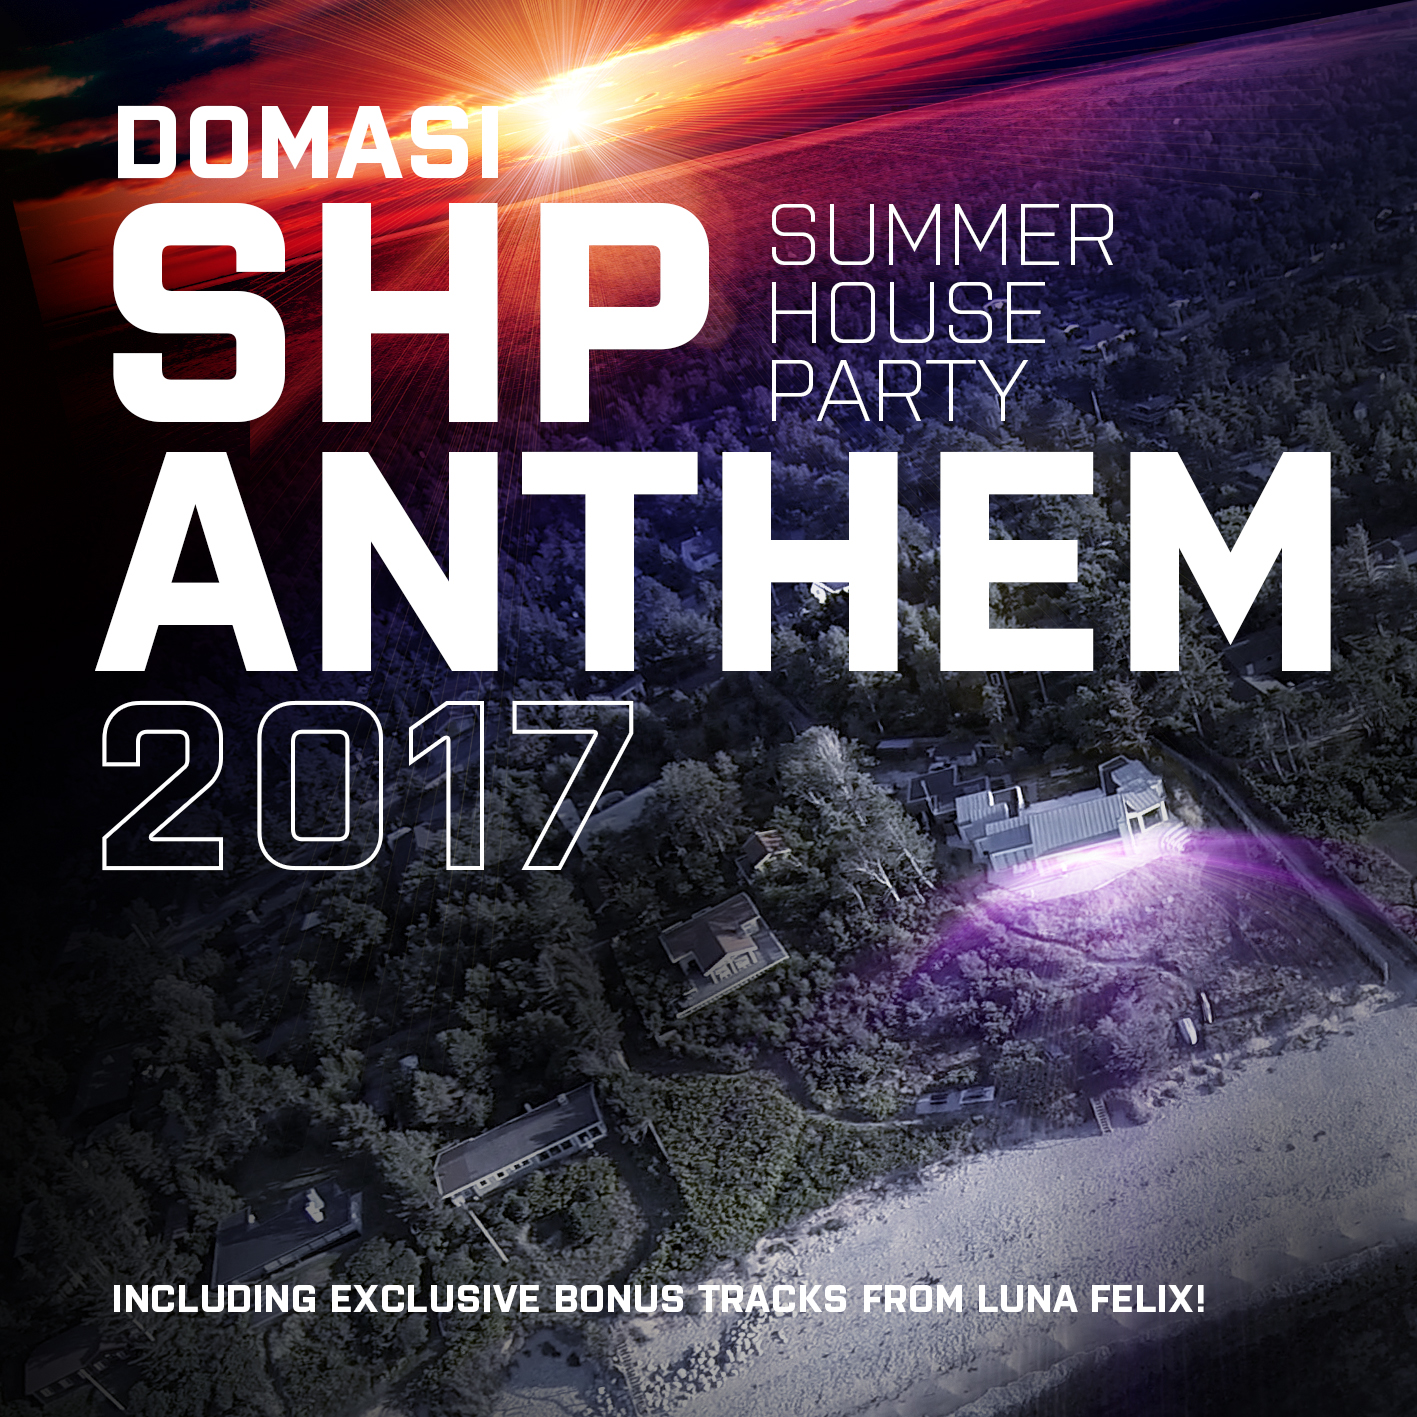 Domasi s h p anthem 2017 idp for Anthem house music